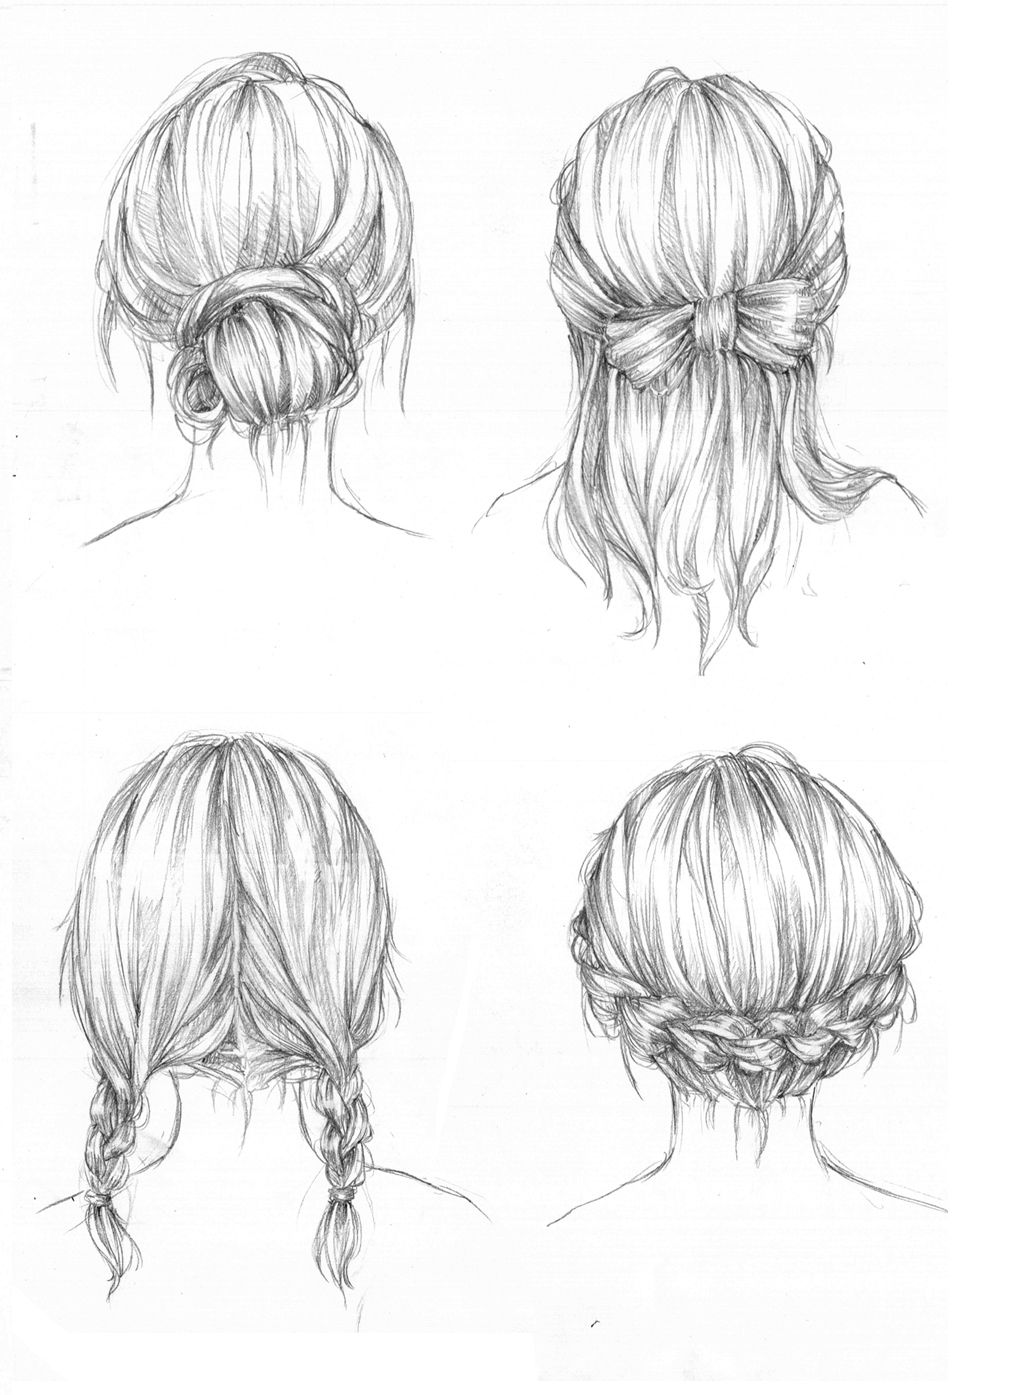 Boy hairstyle sketch drawing art hair girl people female draw boy human guy hairstyles